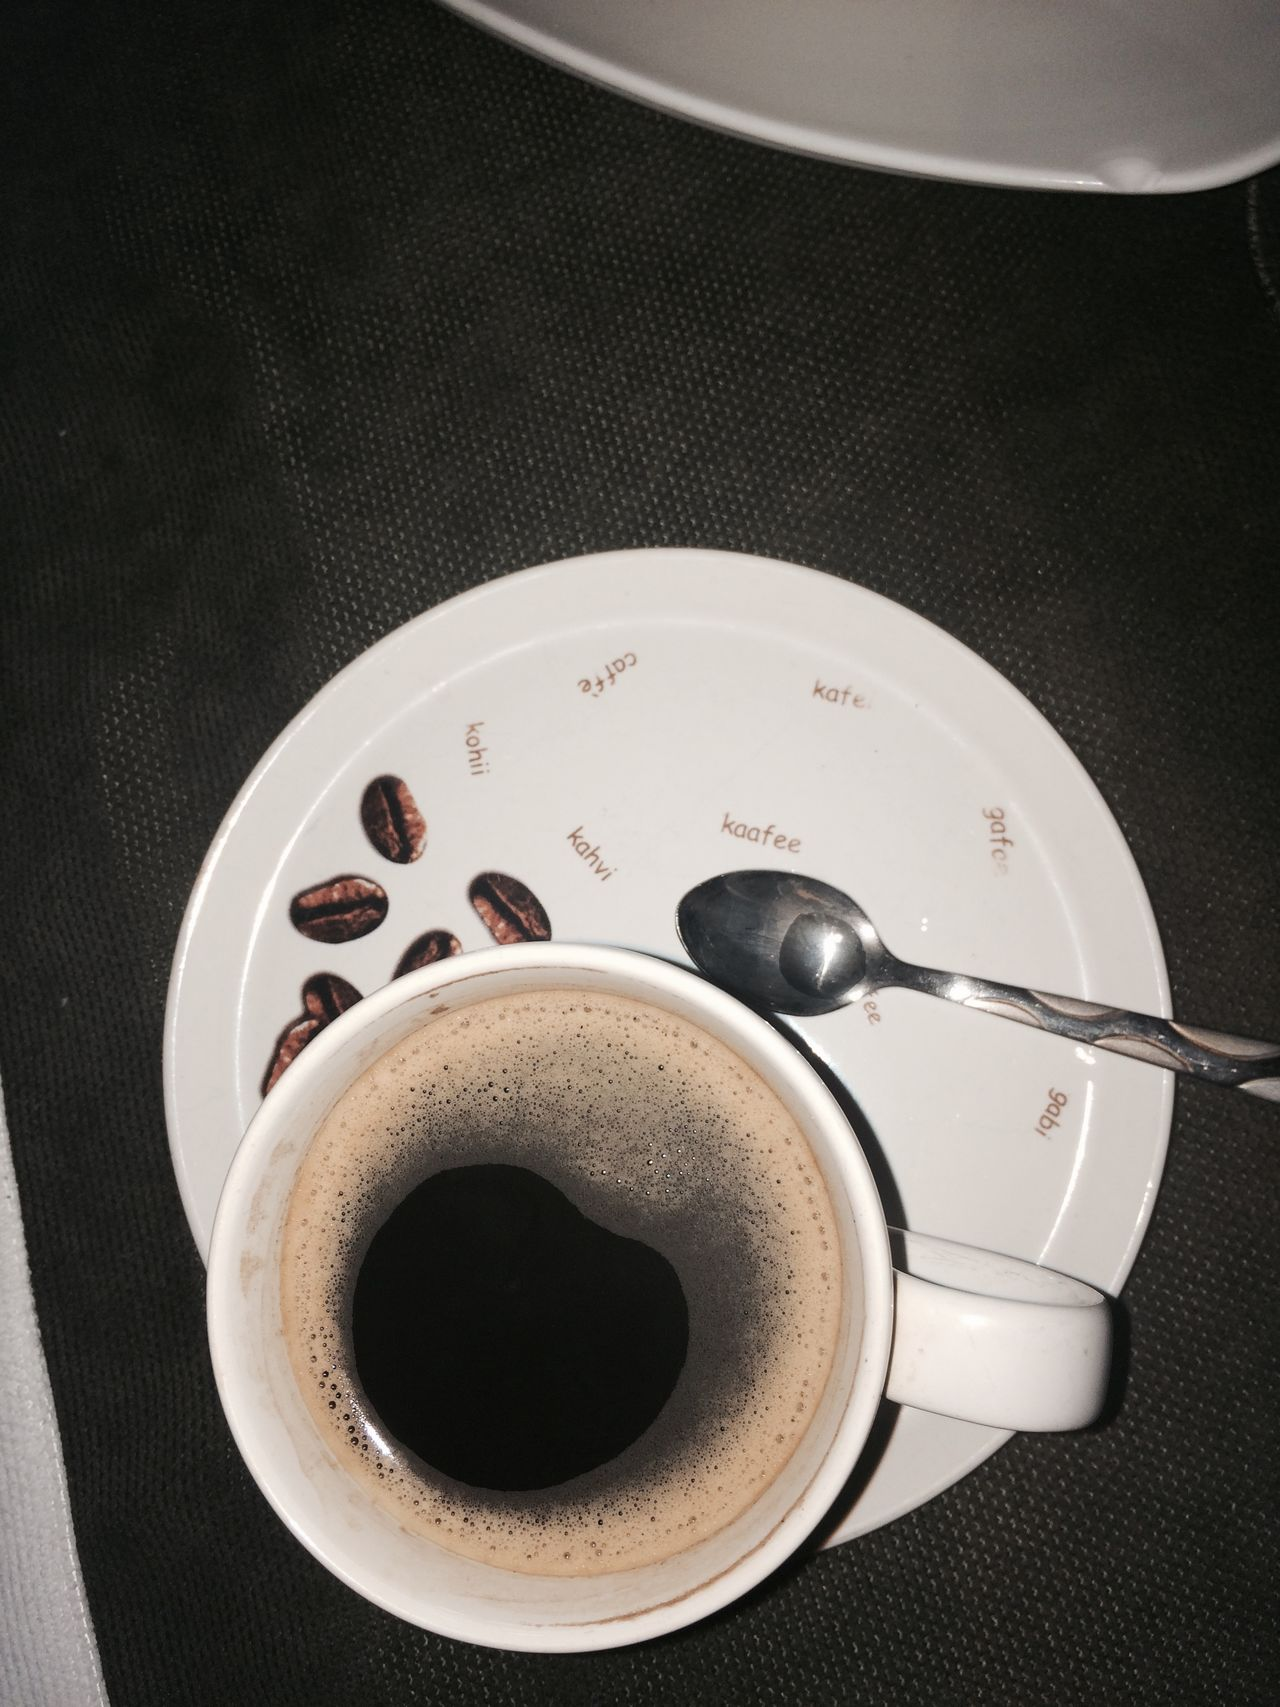 Circle Close-up Coffee Coffee - Drink Coffee Cup Coffie Coffie Beans Coffiecup Coffiee Time Cup Directly Above Drink EyeEm Gallery High Angle View Indoors  Metal Metallic No People Refreshment Saucer Sink Spoon Still Life Table Technology